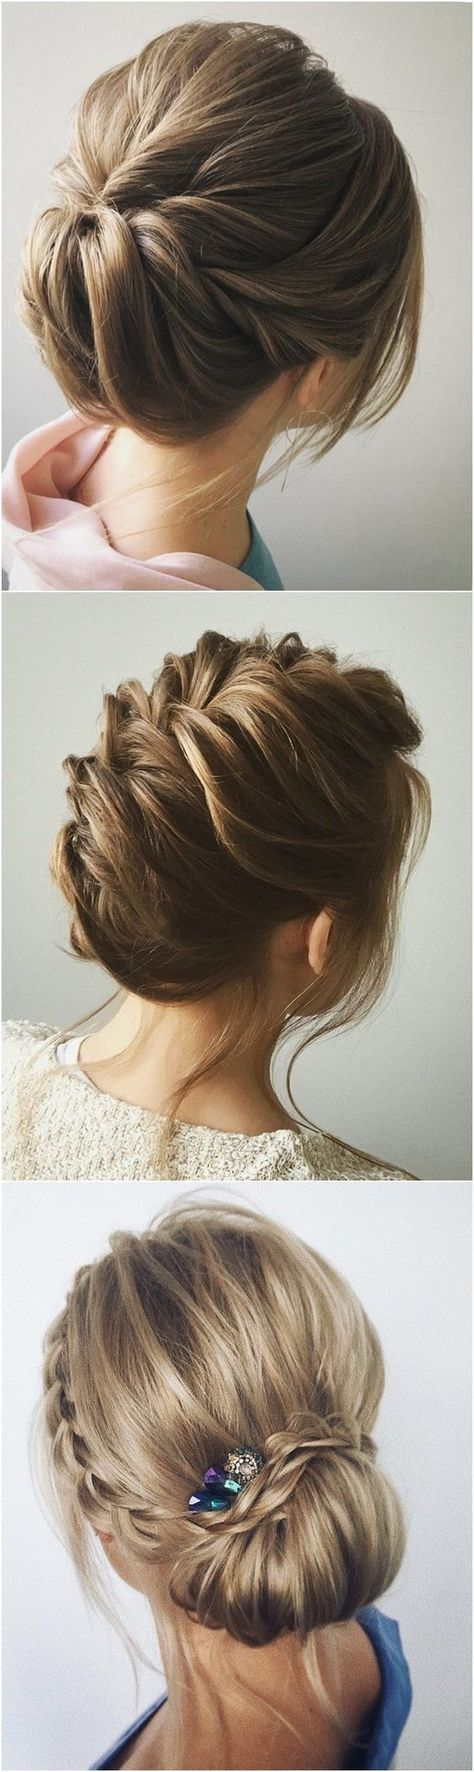 medium hair wedding styles 12 trending updo wedding hairstyles from instagram page 2188